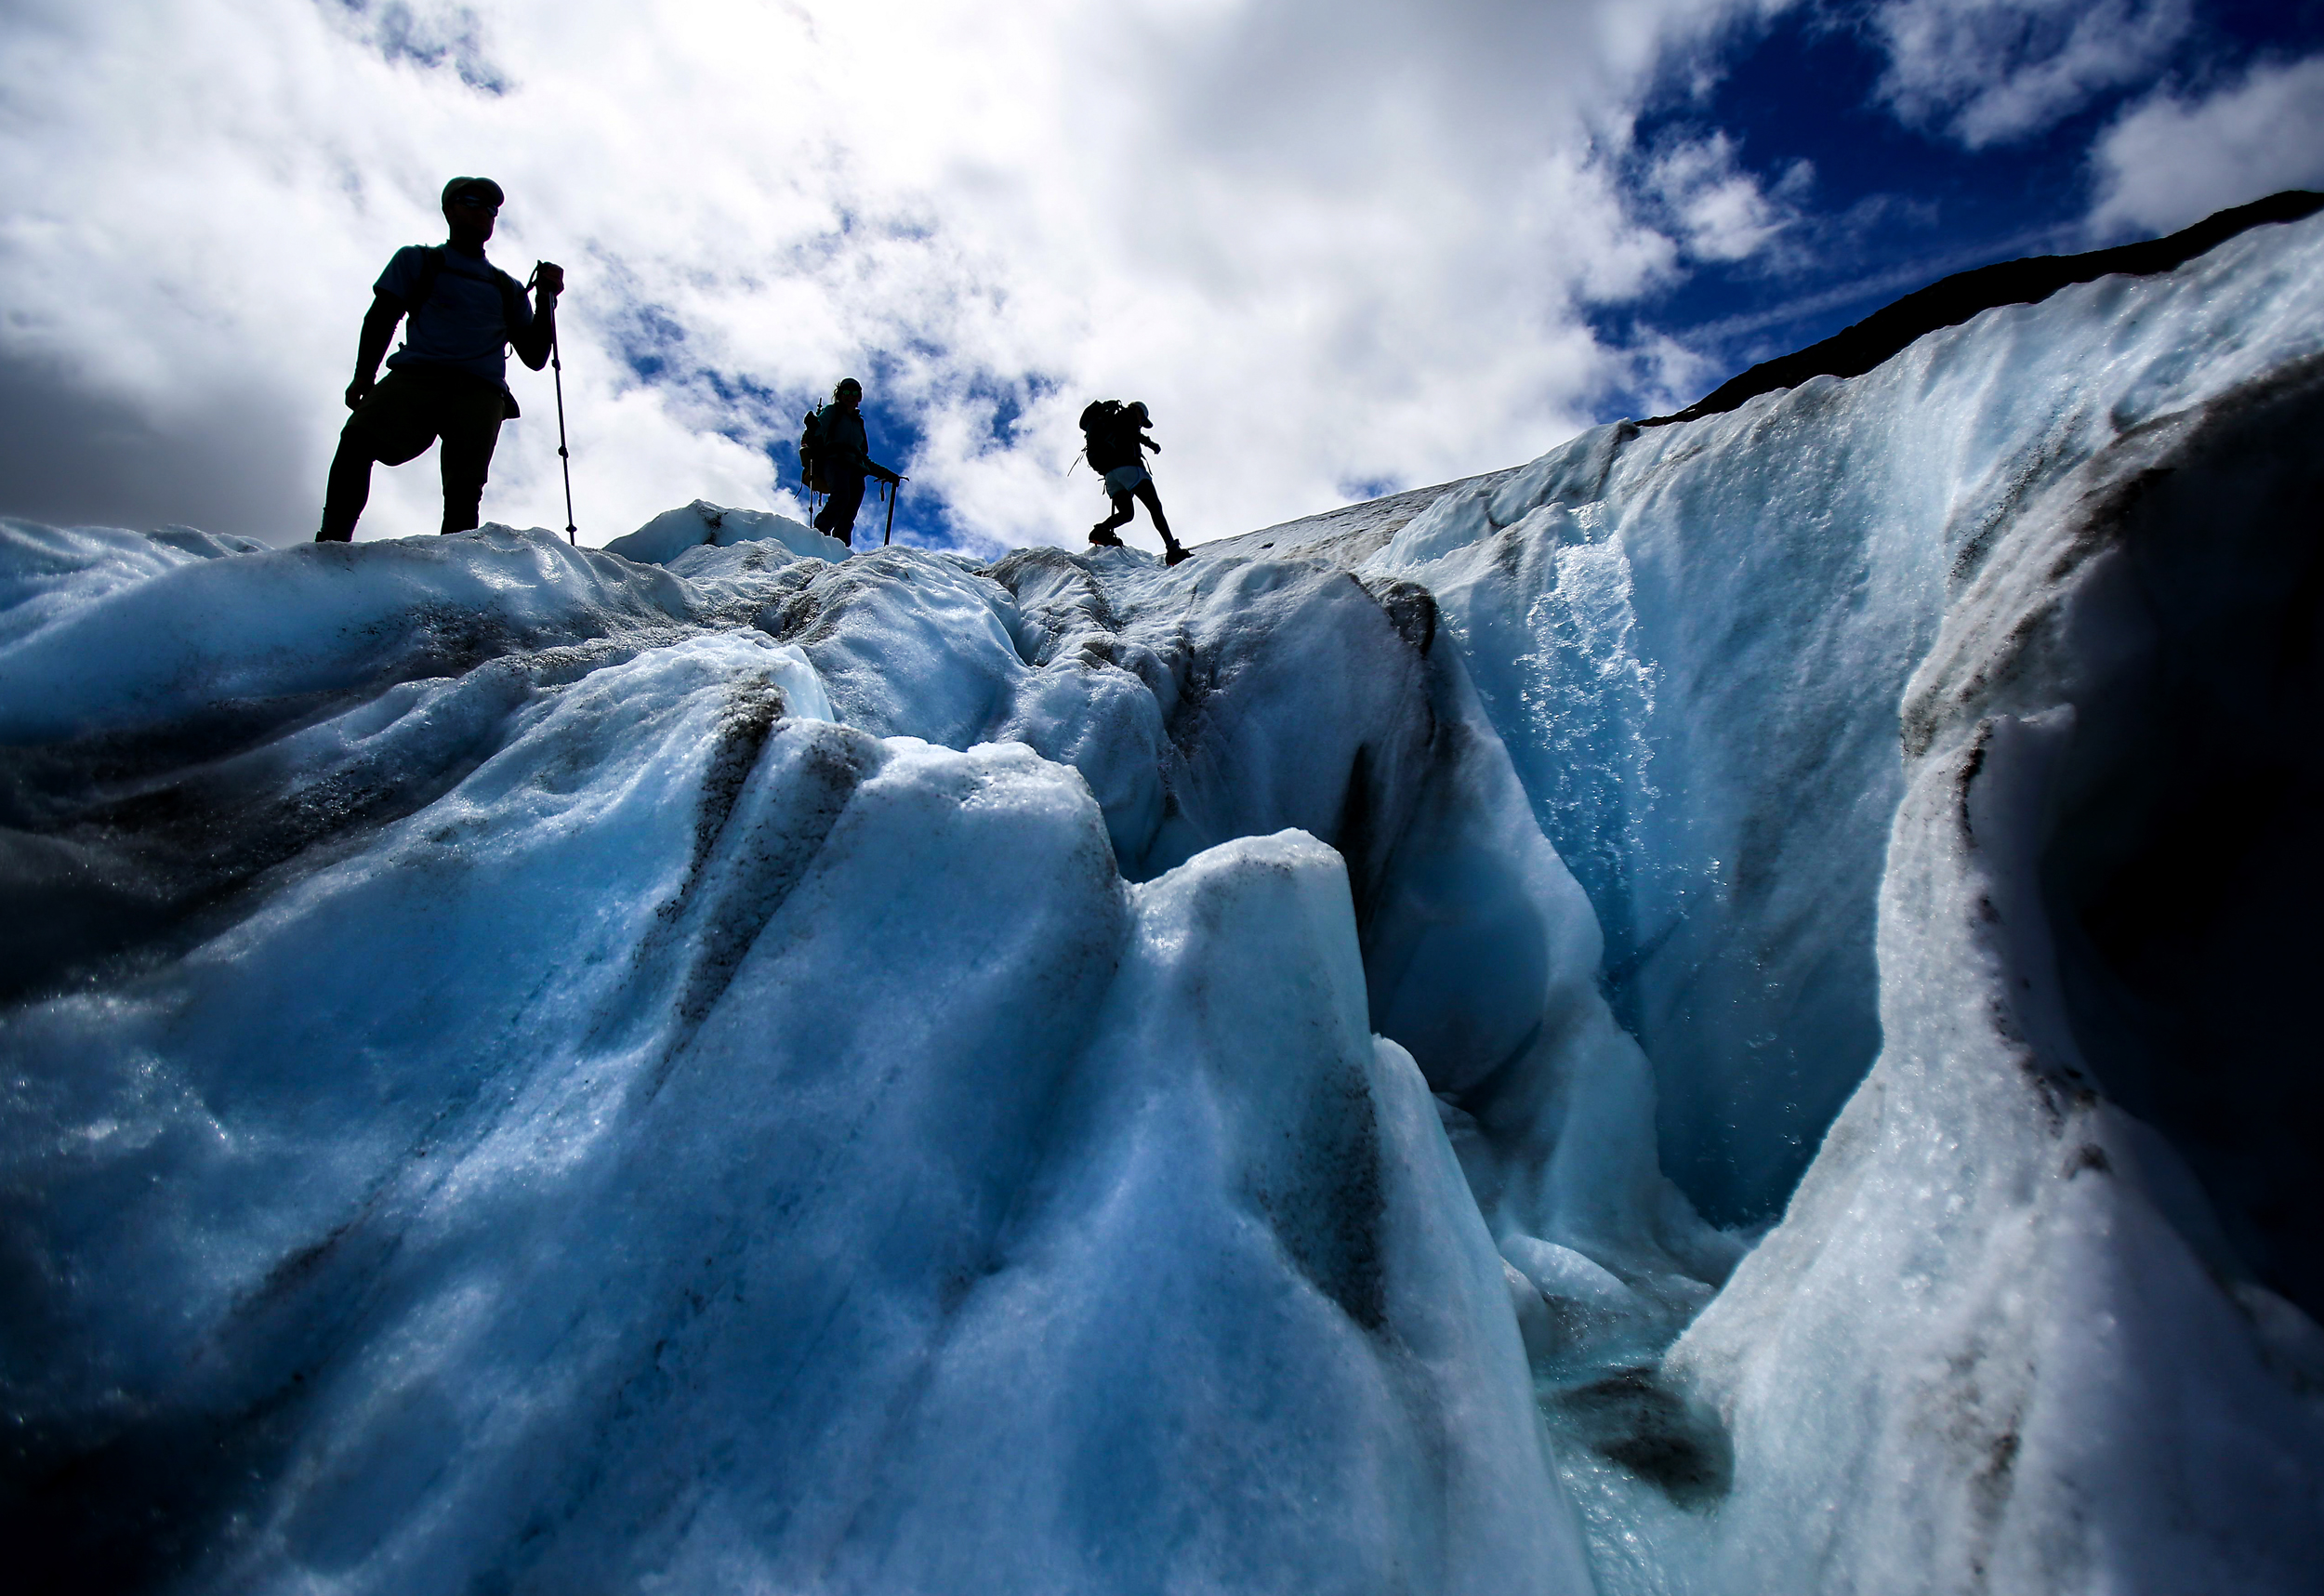 Research assistants navigate around a supraglacial stream on Mt. Baker's Sholes Glacier as they make measurements to assess the volume lost that will be added to the 32 years of data recorded by Glaciologist Mauri Pelto, Friday, Aug. 7, 2015. The glacier has receded over 90 meters, said Pelto. (Sy Bean / The Seattle Times)